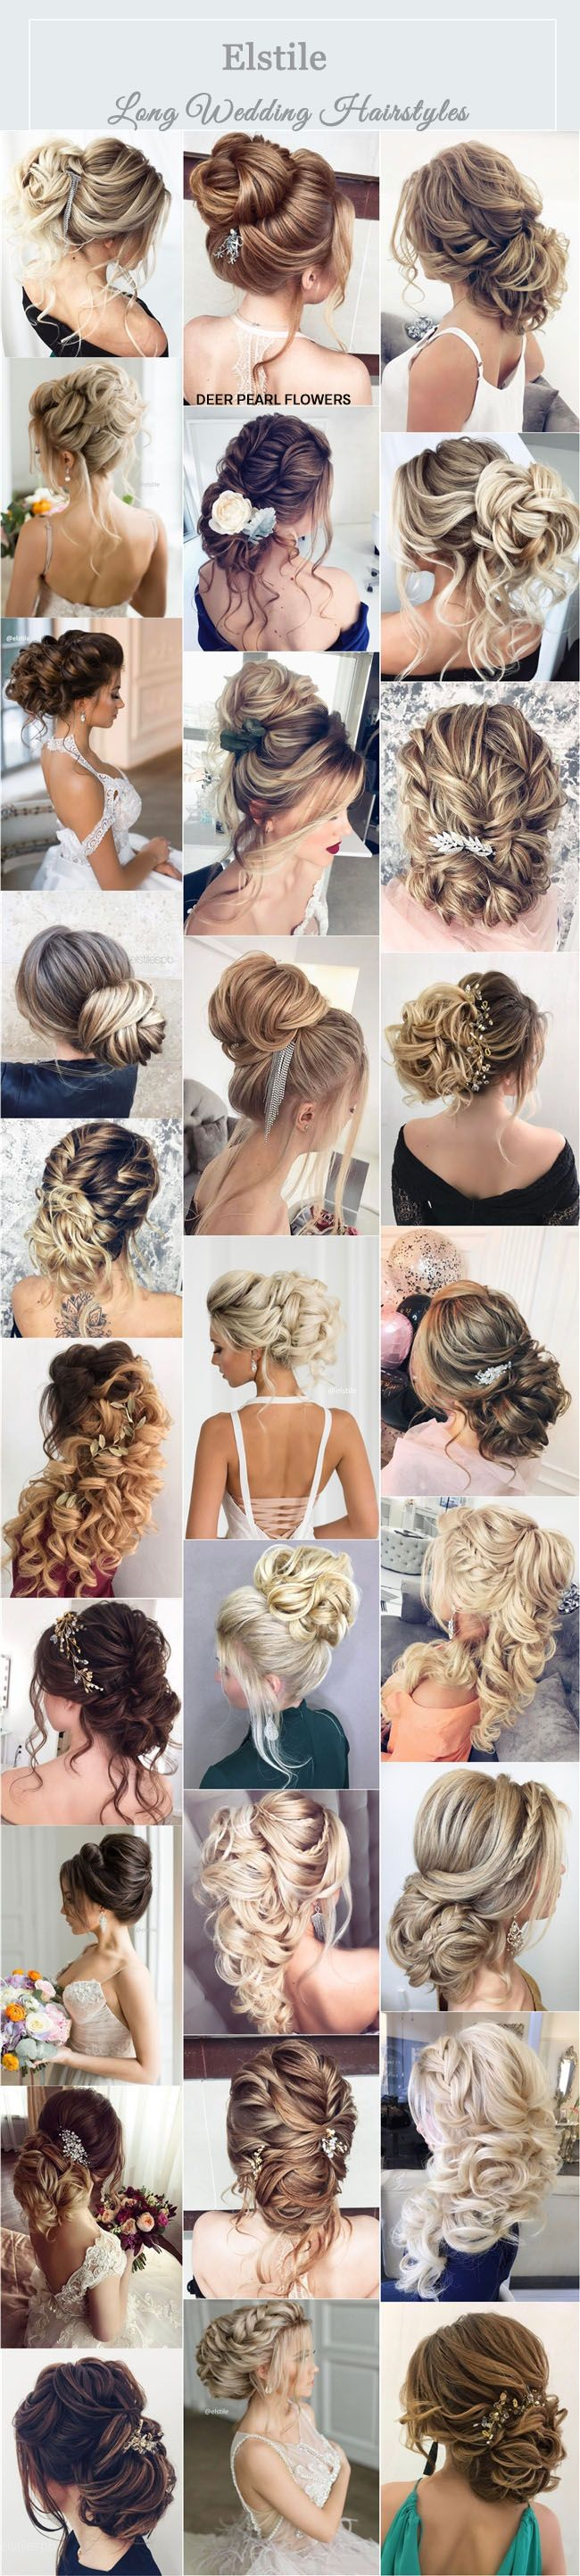 Elstile Wedding Hairstyles & Updos for Long Hair / http://www.deerpearlflowers.com/wedding-hairstyles-for-long-hair/